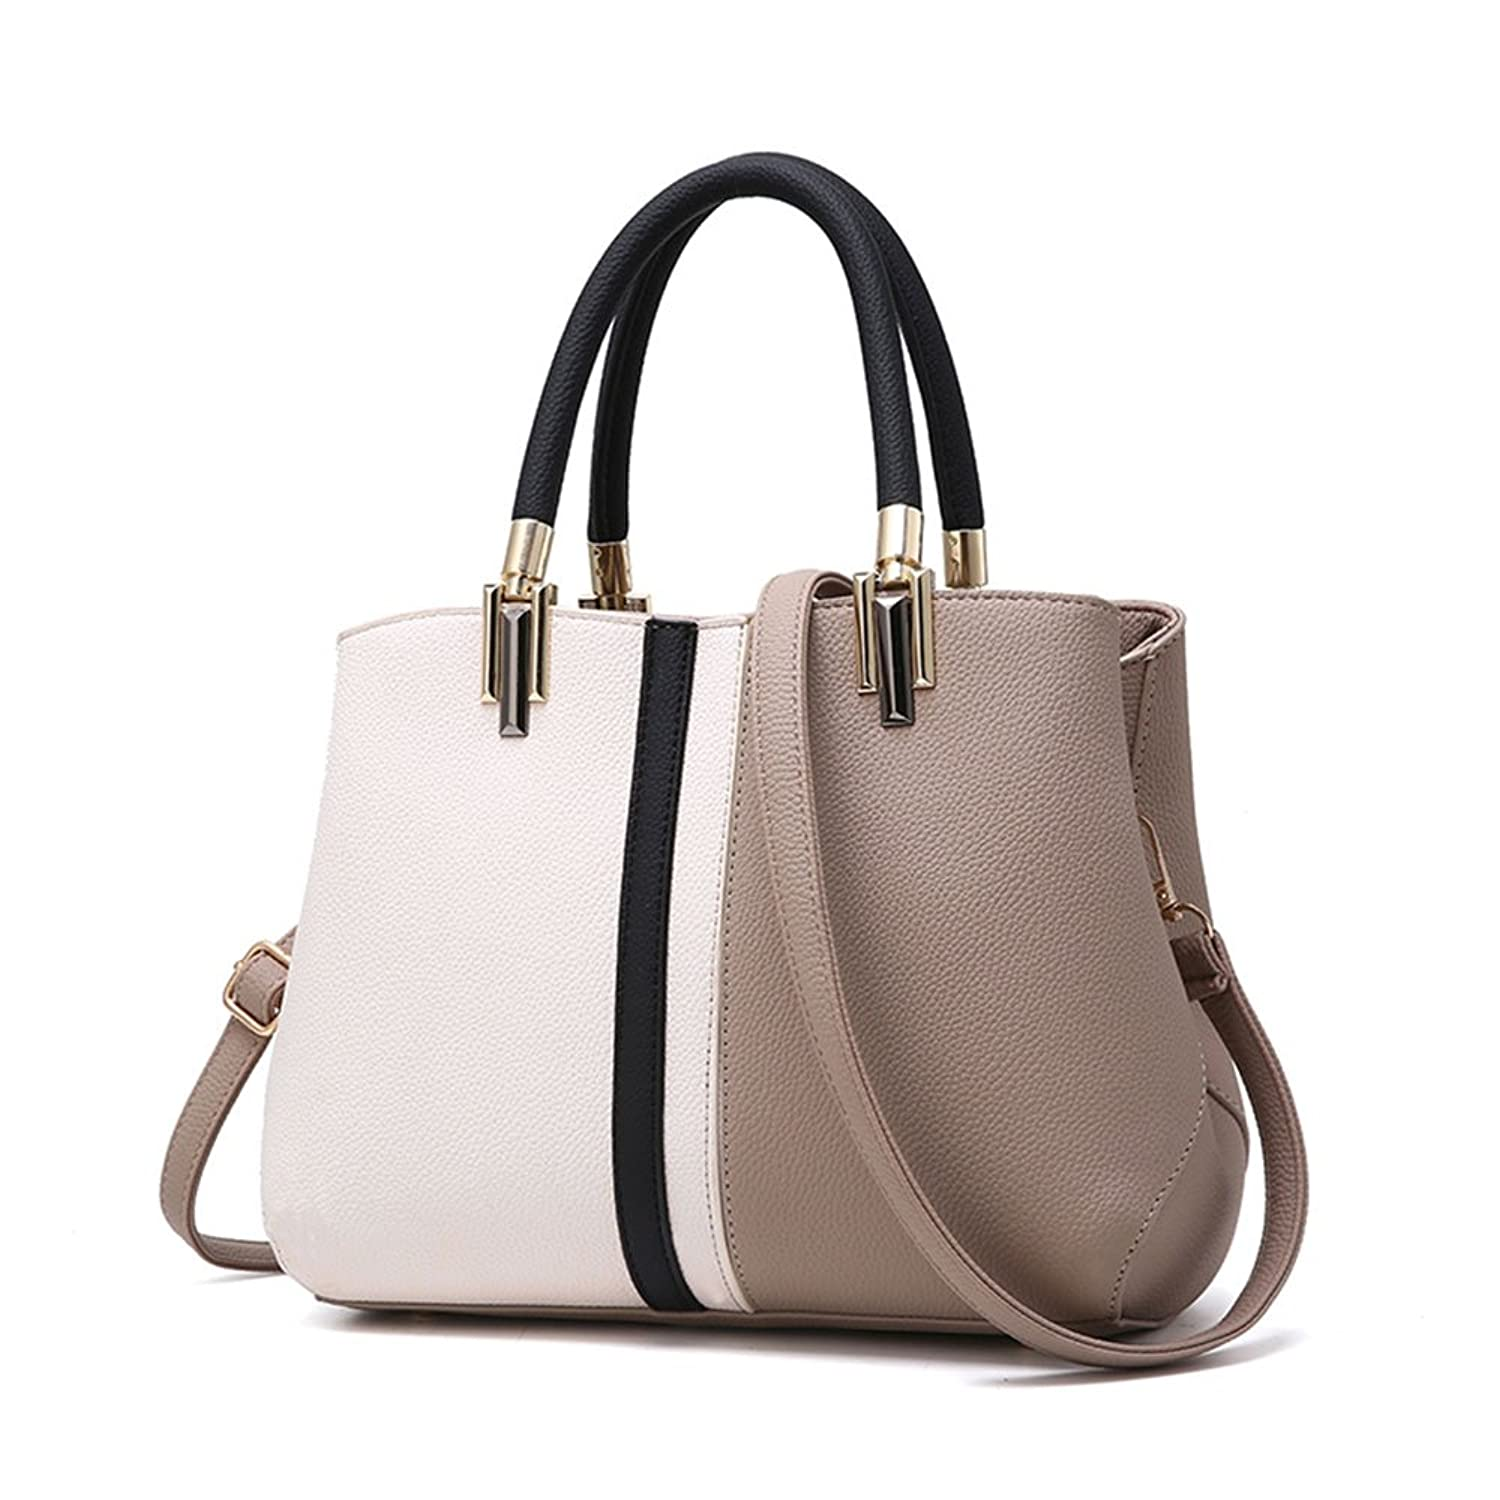 e7417239c658 Purses and Handbags for Women Top Handle Bags Leather Satchel Totes  Shoulder Bag From Nevenka